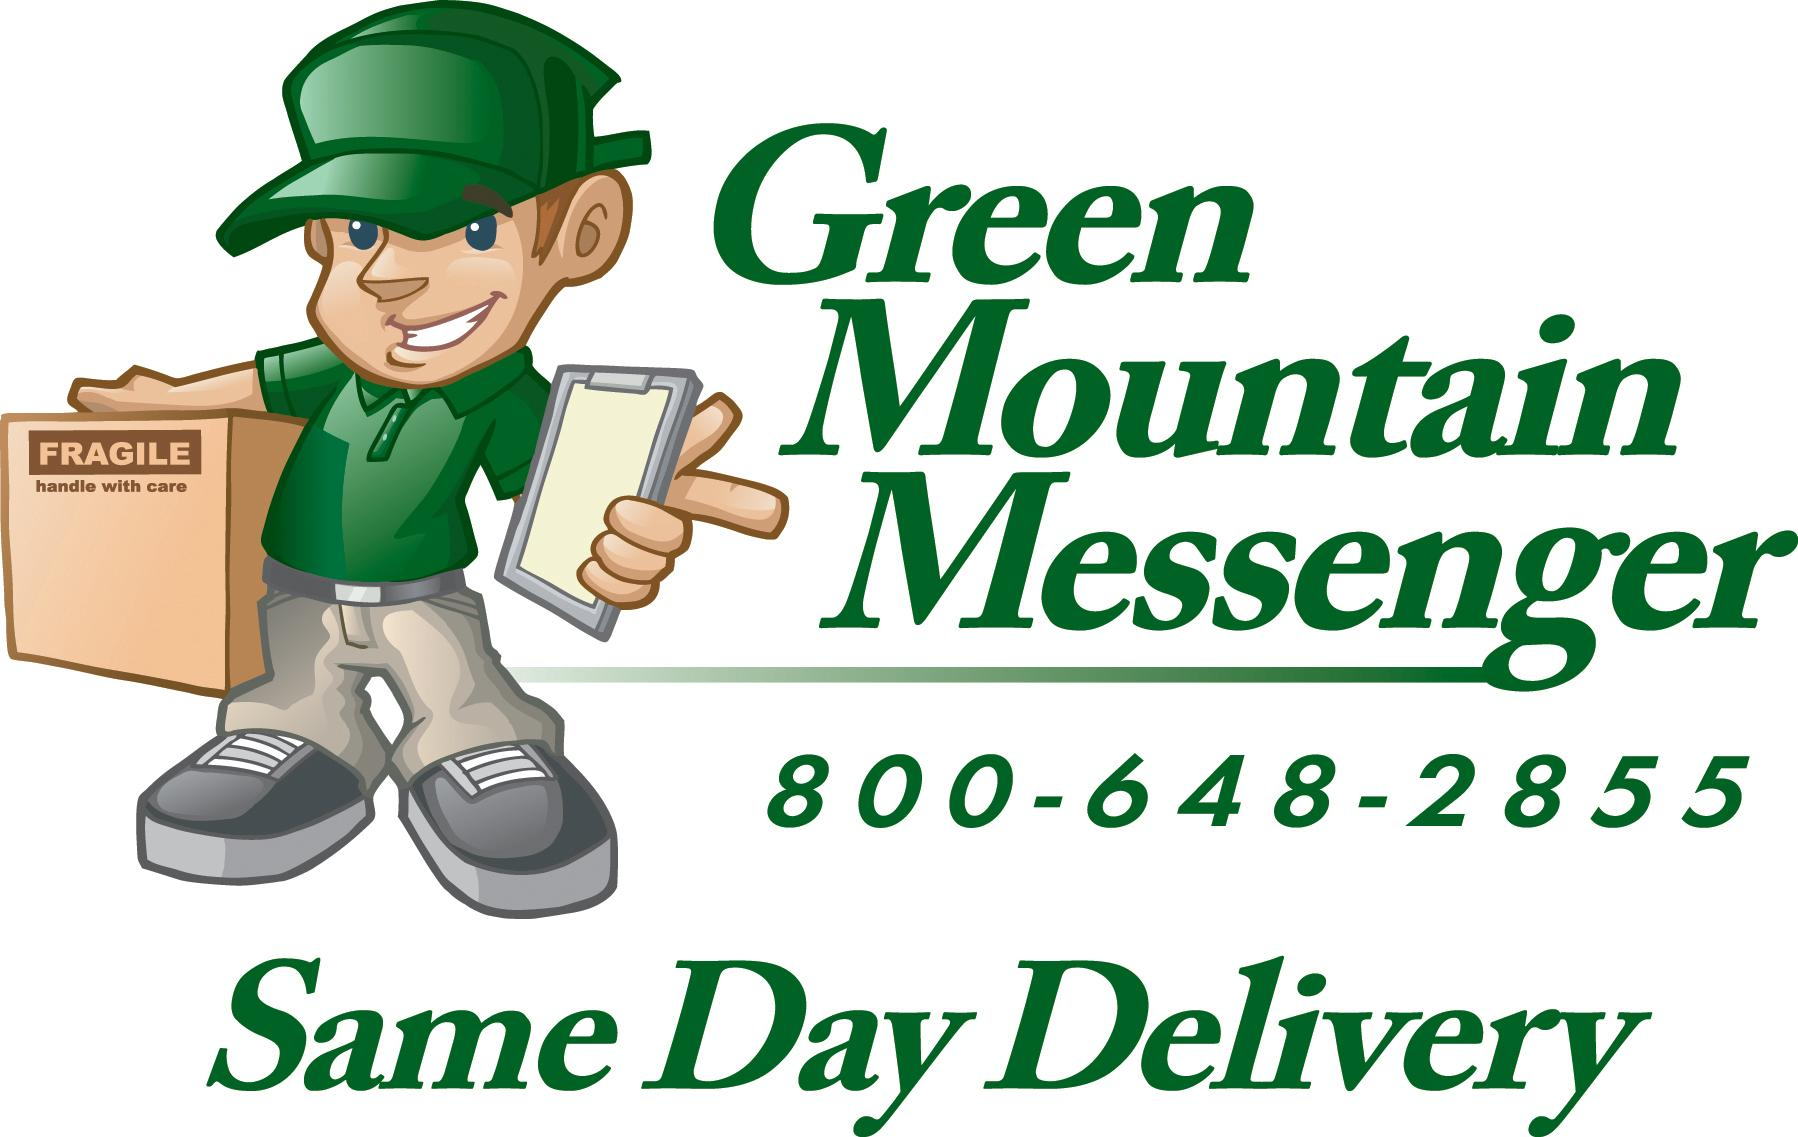 Green Mountain Messenger Inc.